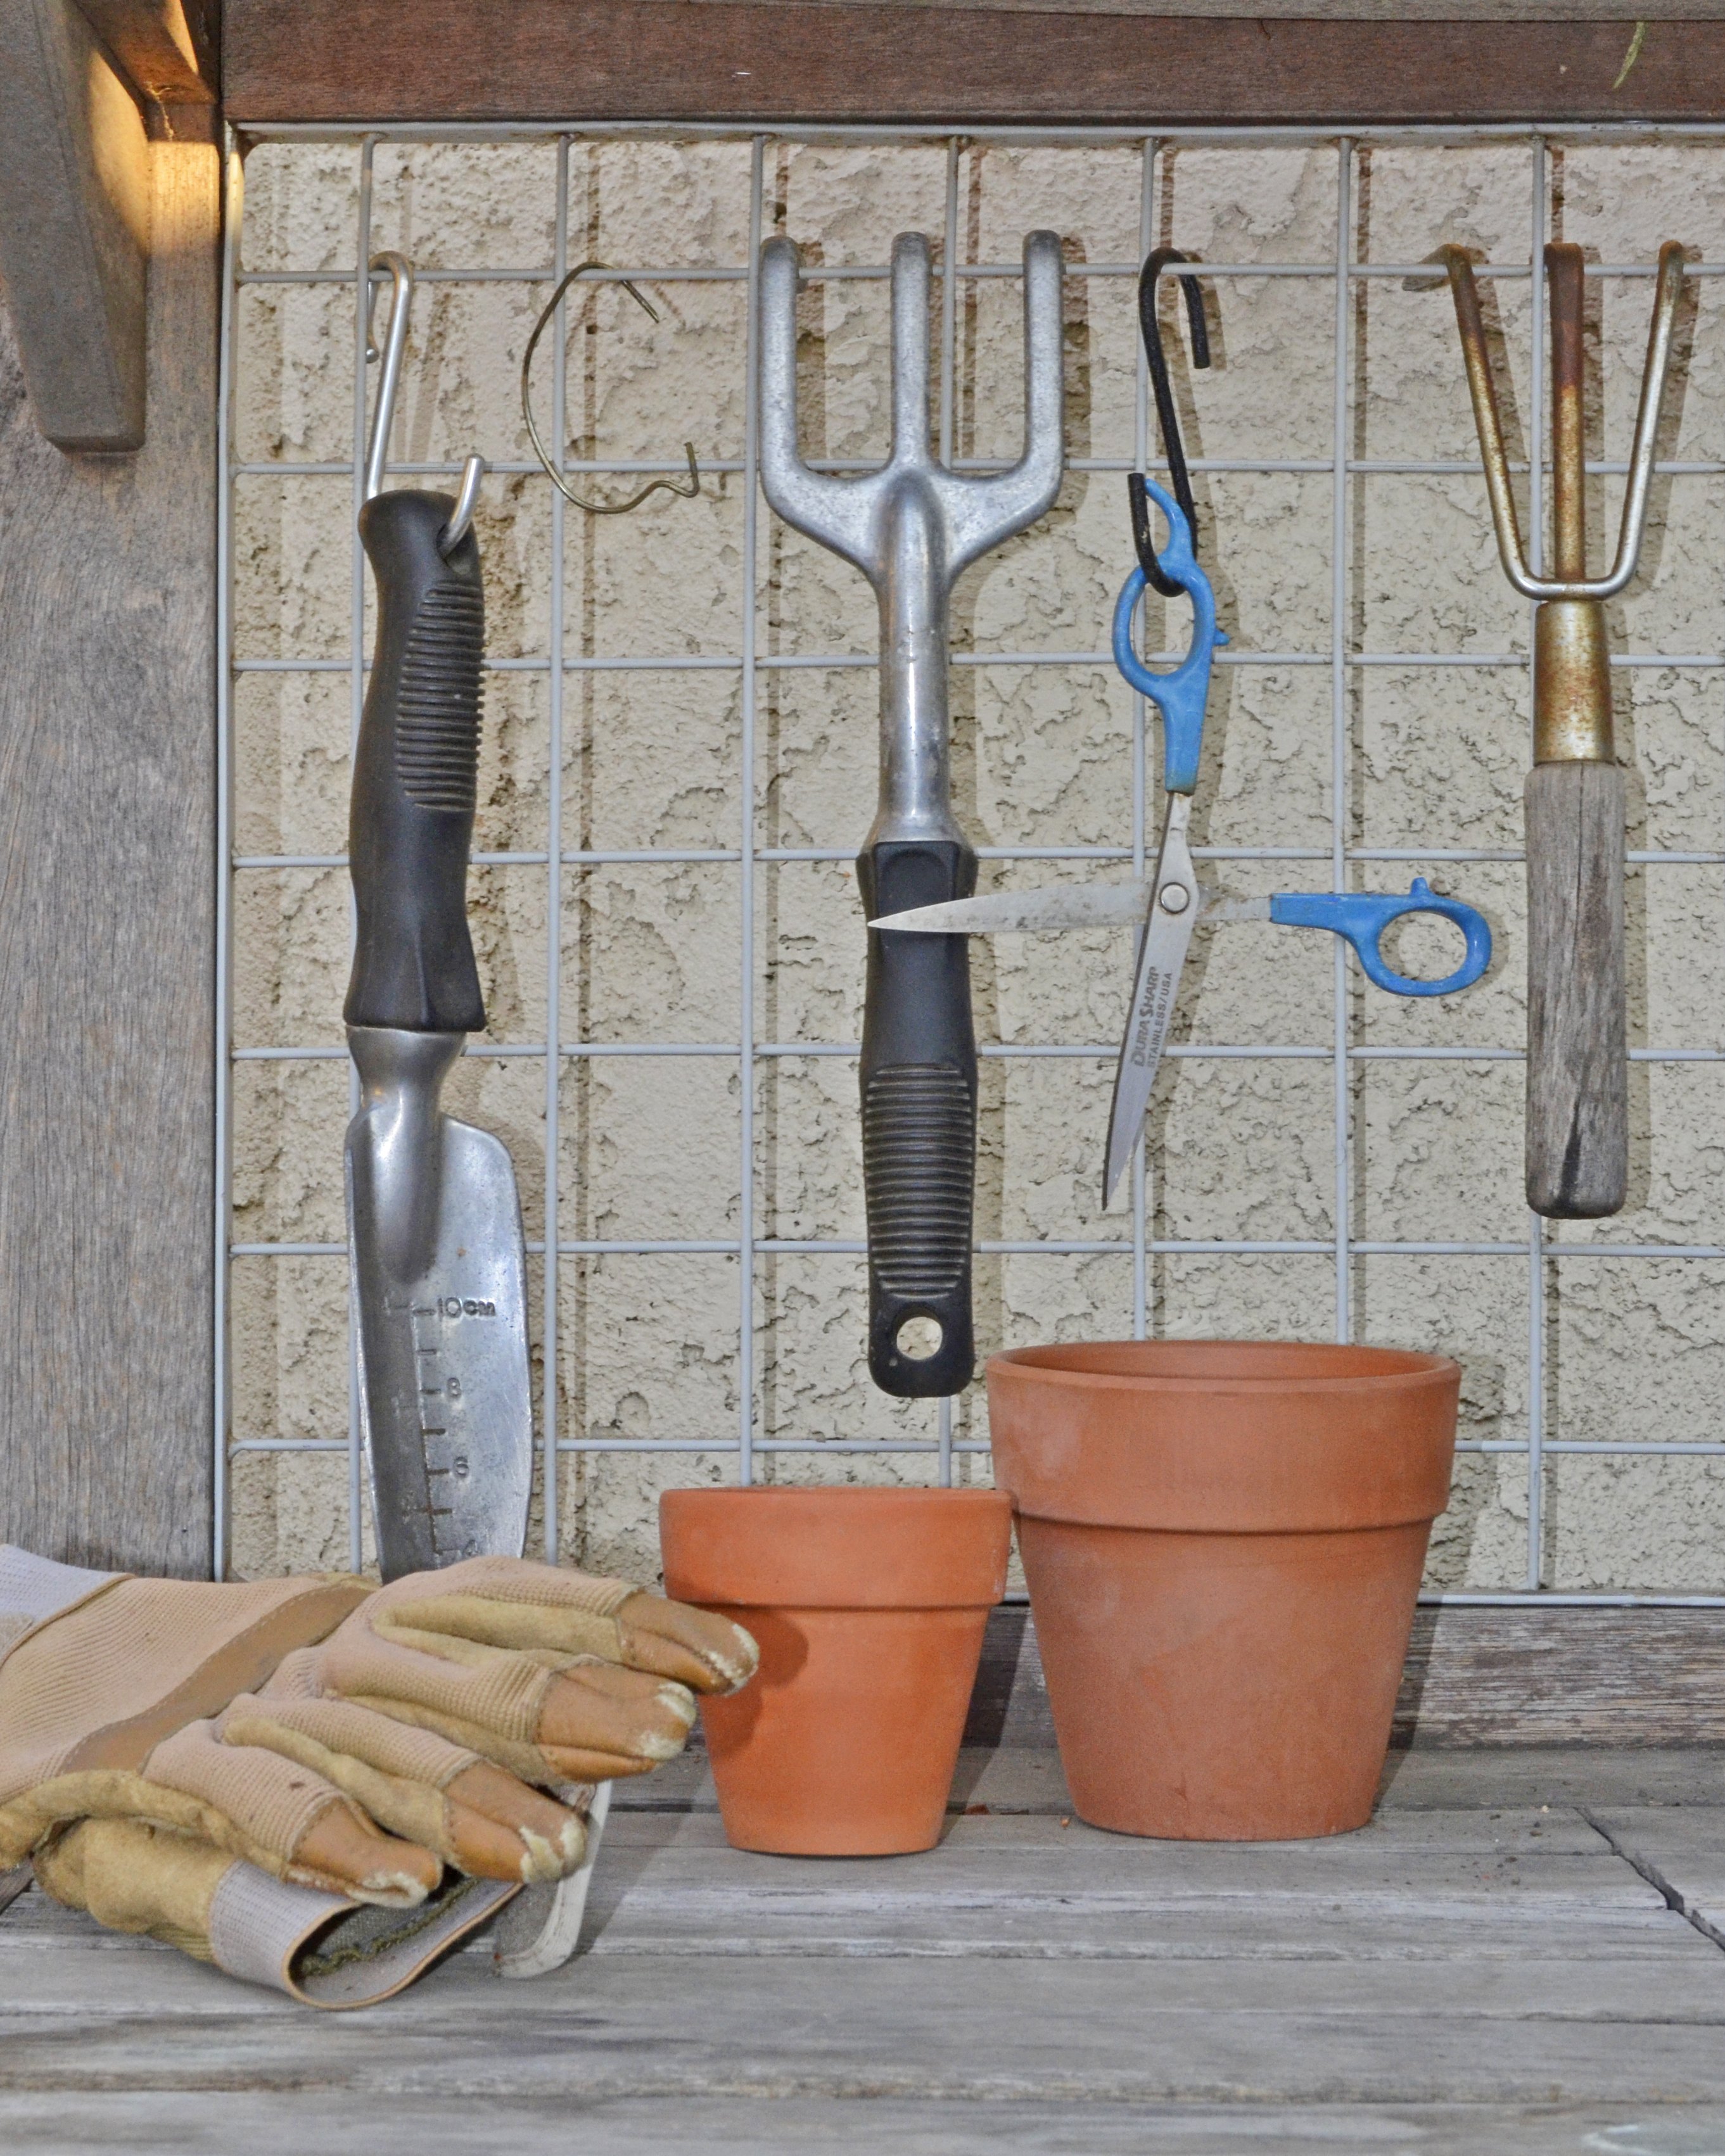 Quality tools and gloves are a gardener's mainstay